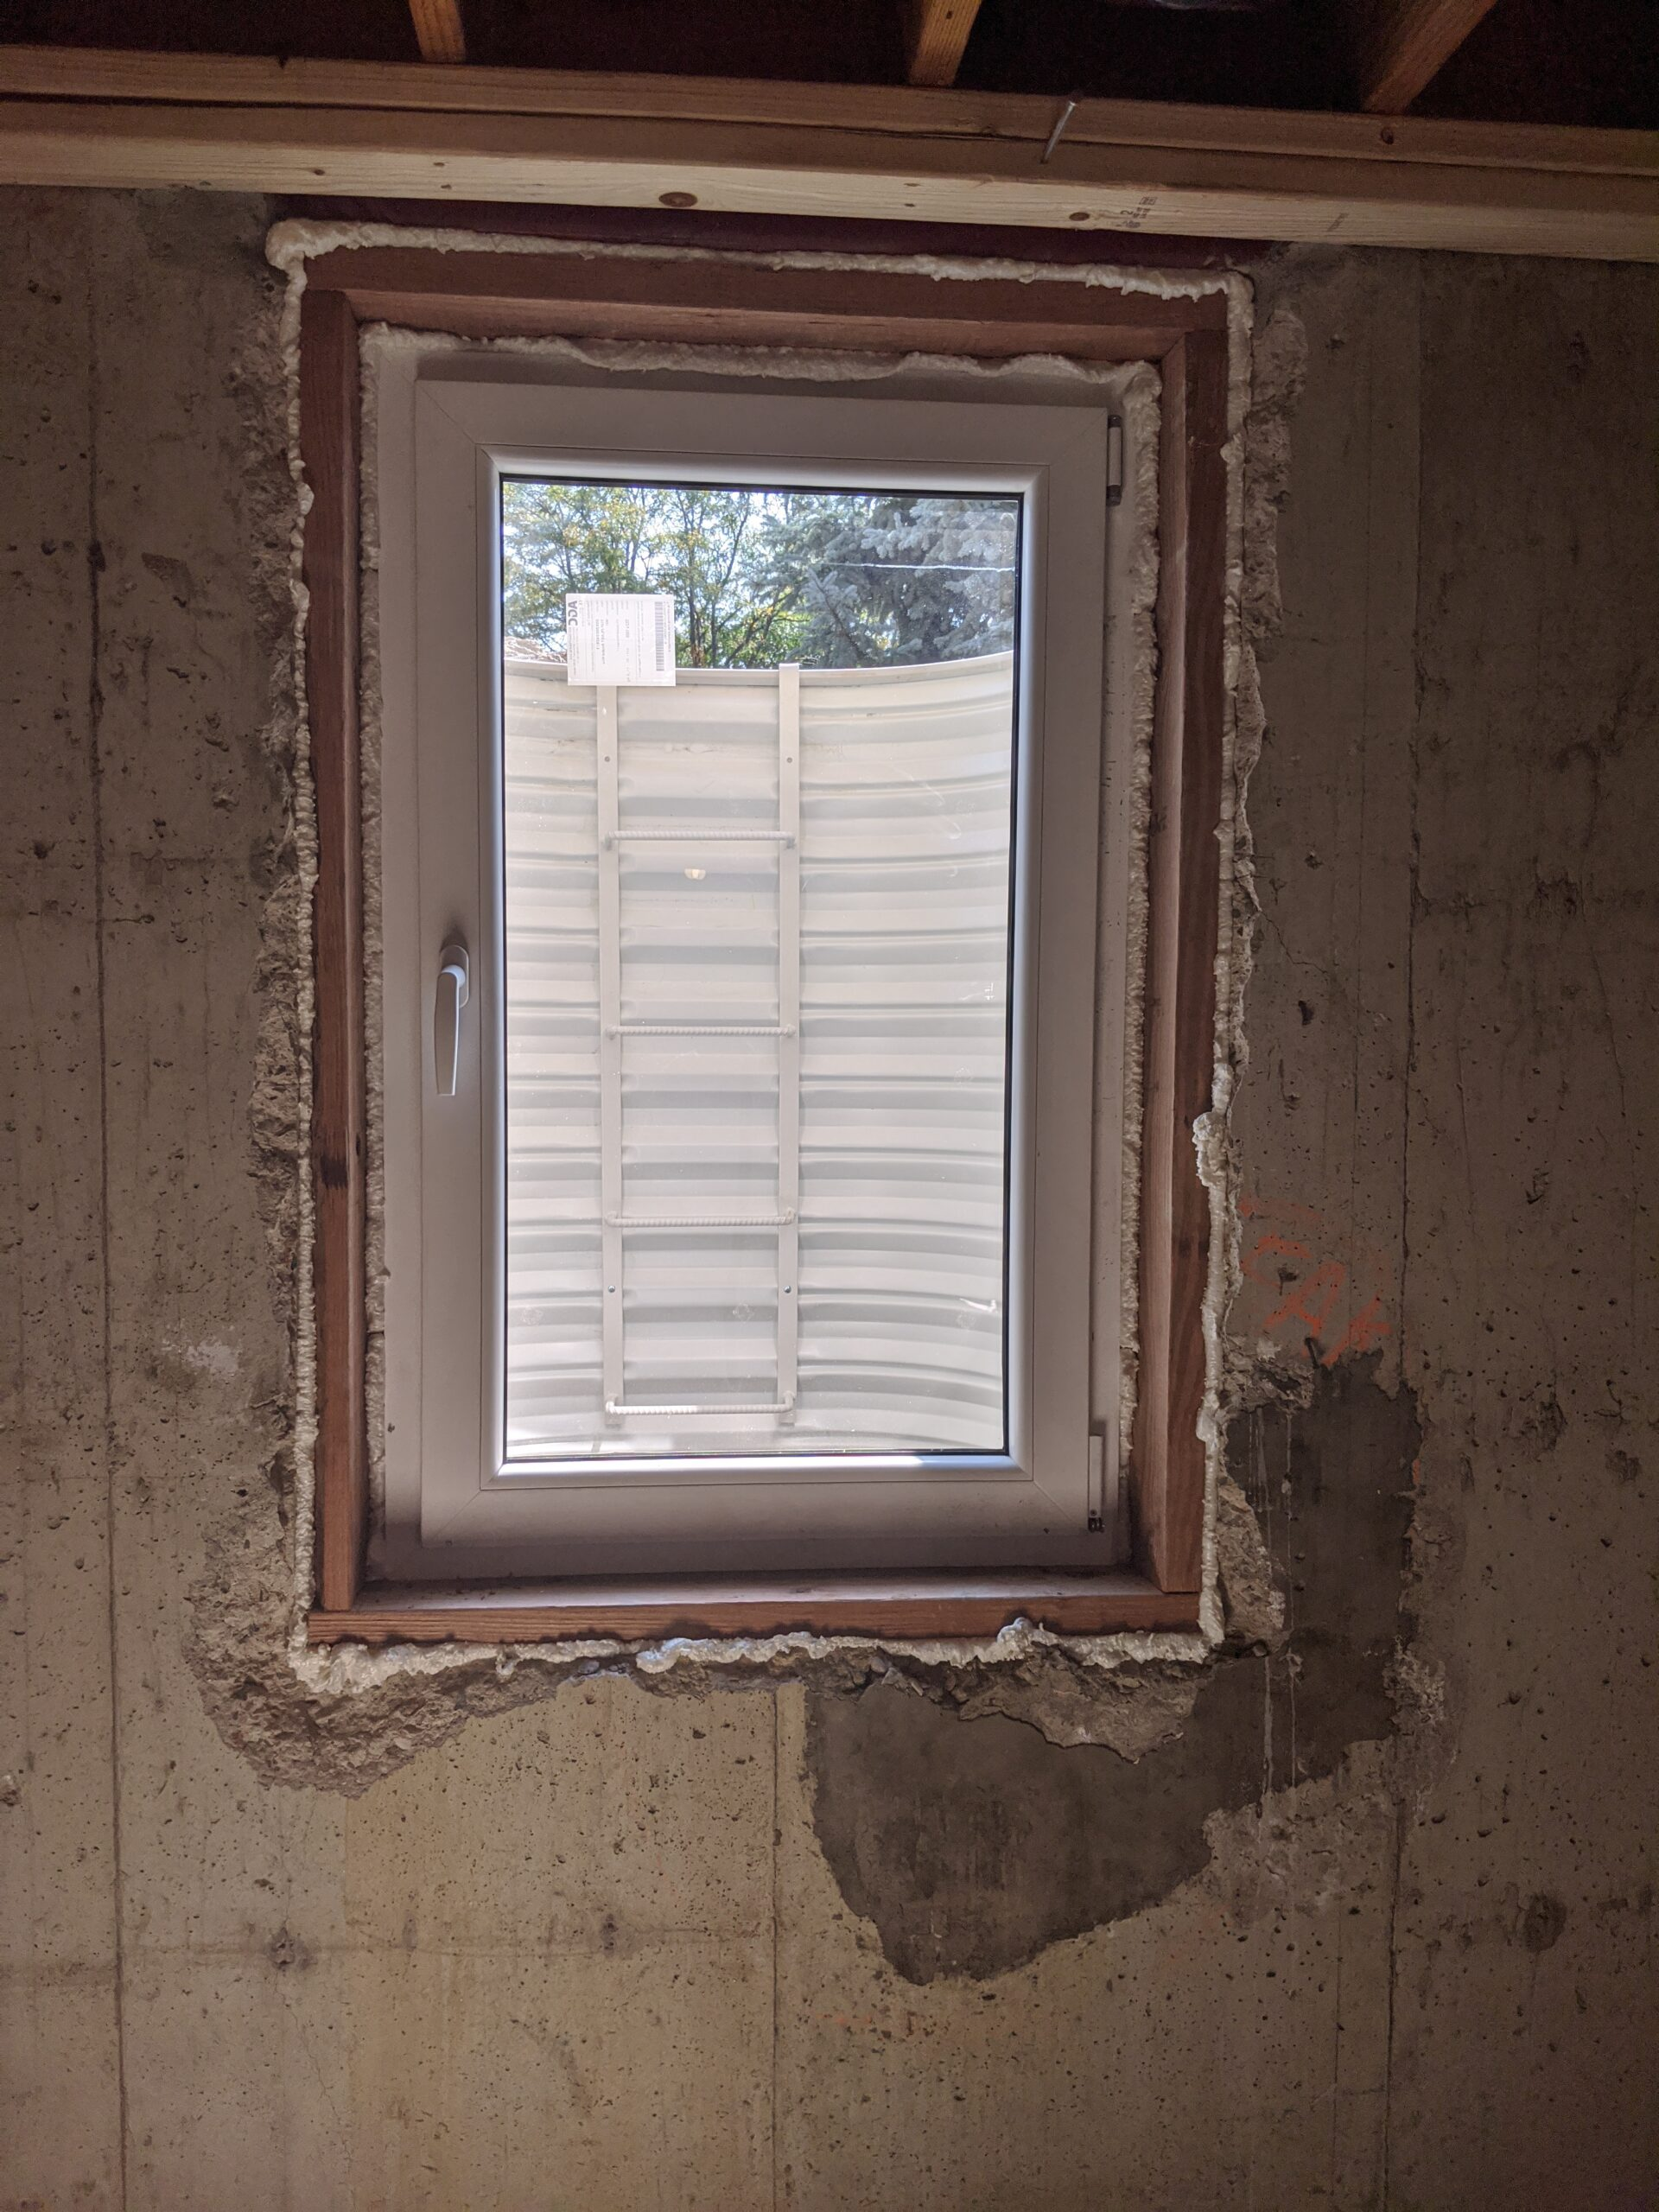 AFTER: Foam insulation fills gaps between the egress window and foundation to keep insects and moisture out, while keeping in heat or air conditioning.